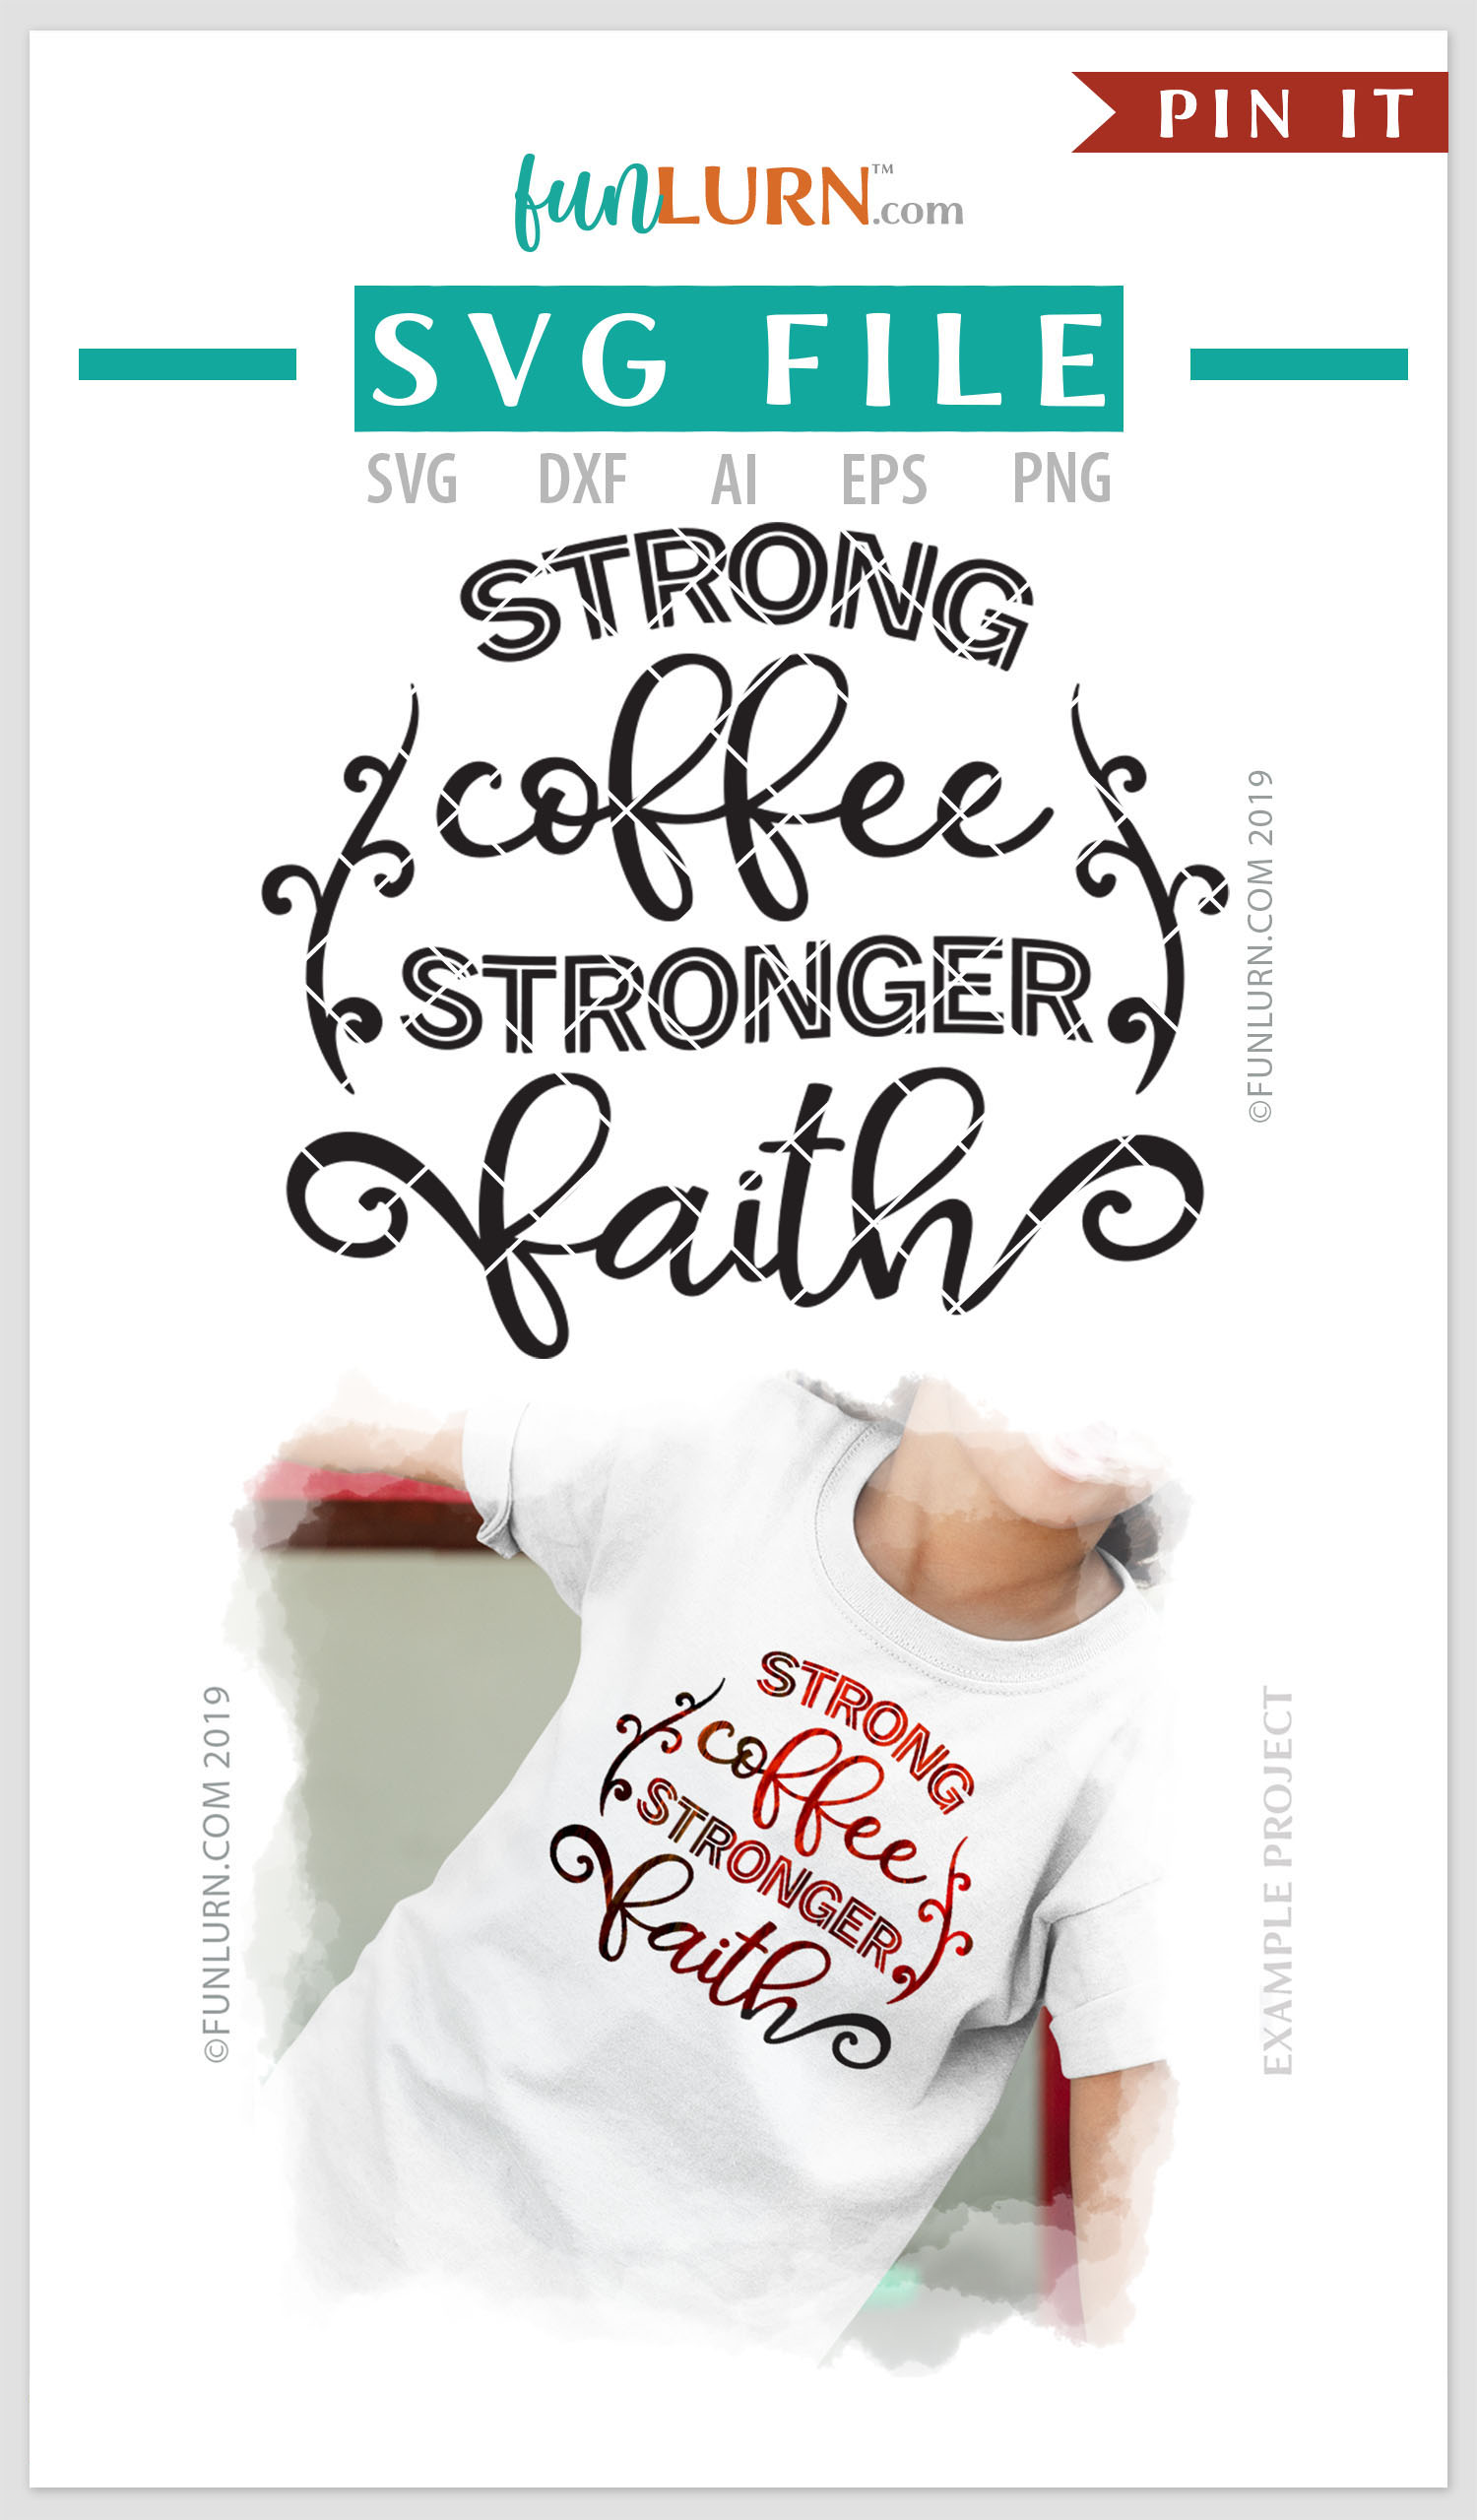 Strong Coffee Stronger Faith SVG Cut File example image 4